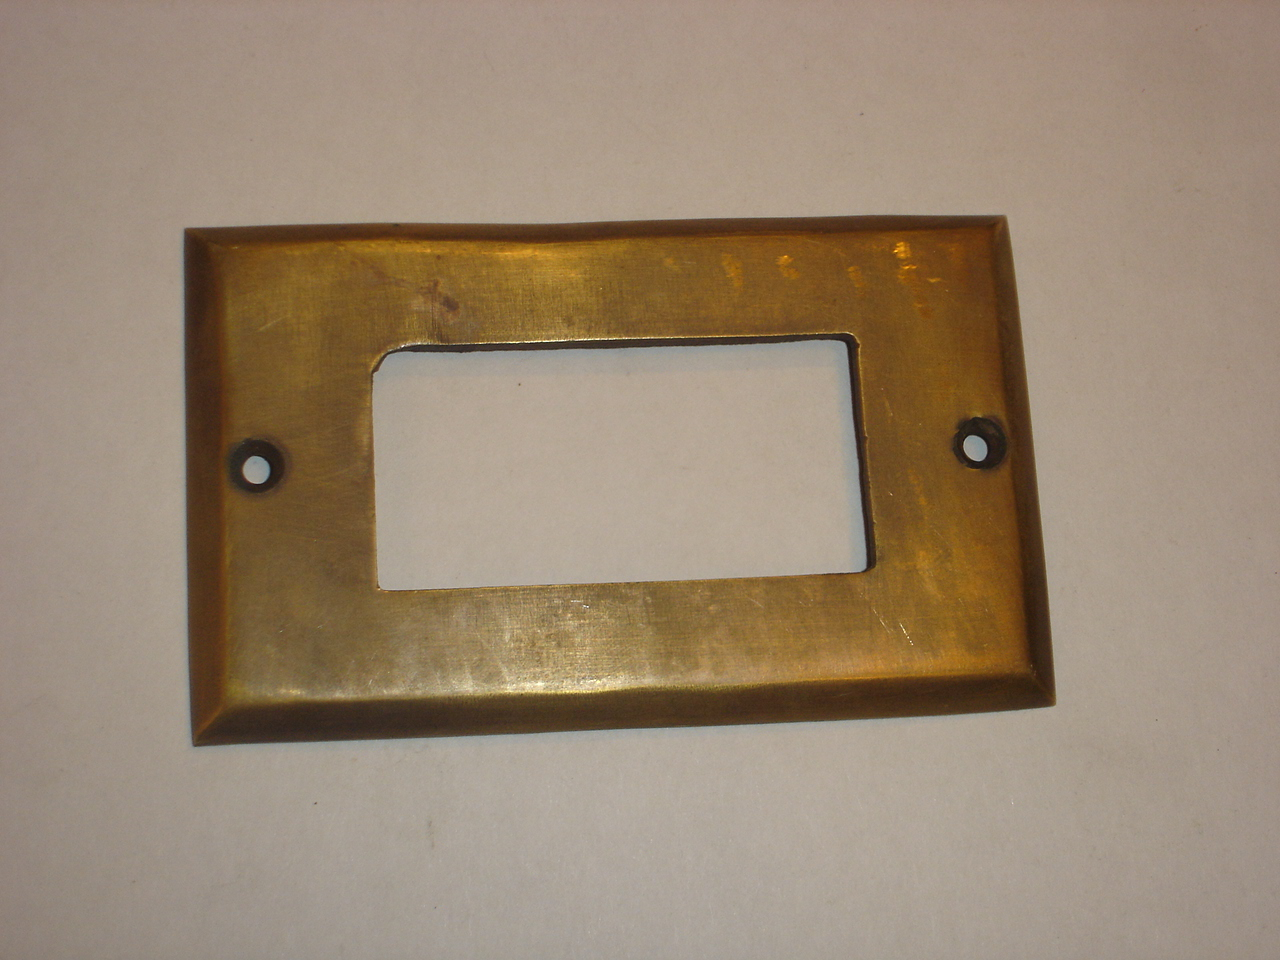 Brass switch cover Code AE.051 size 115 x 71 mm.